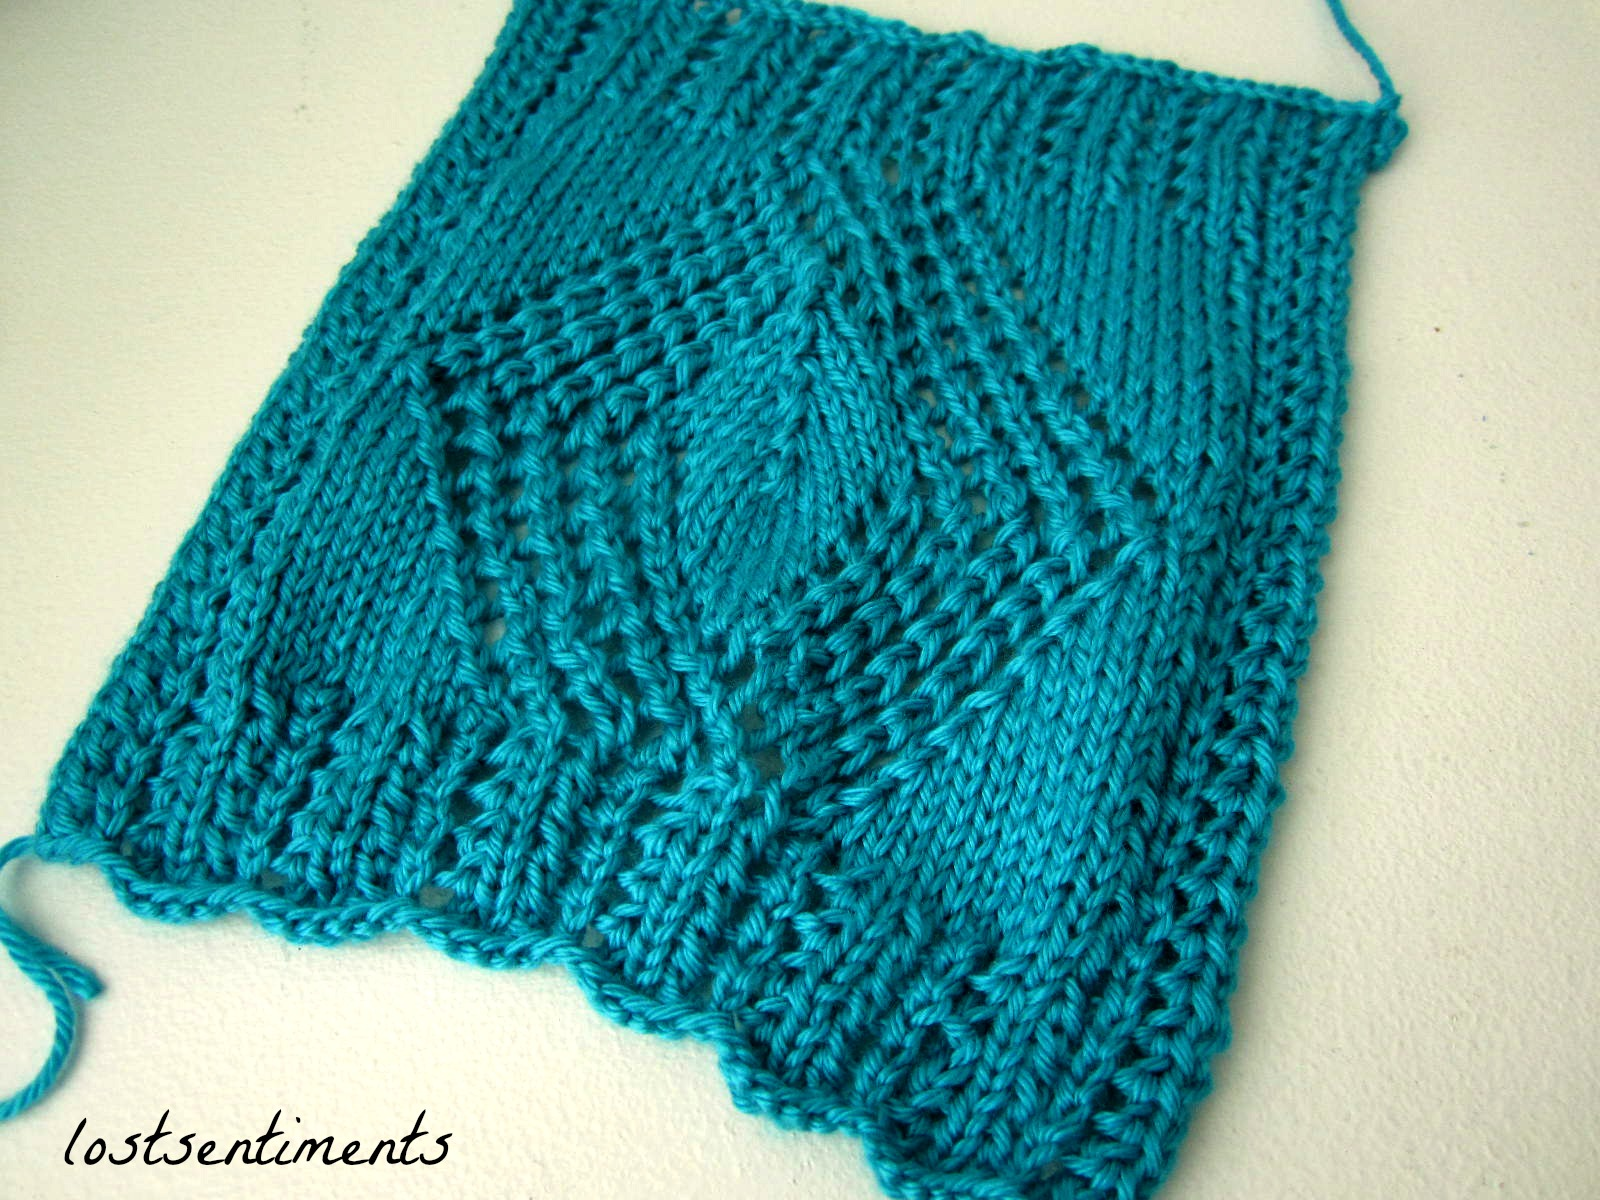 Ssk Knitting Diagram : Lostsentiments openwork diamond scarf free knitting pattern